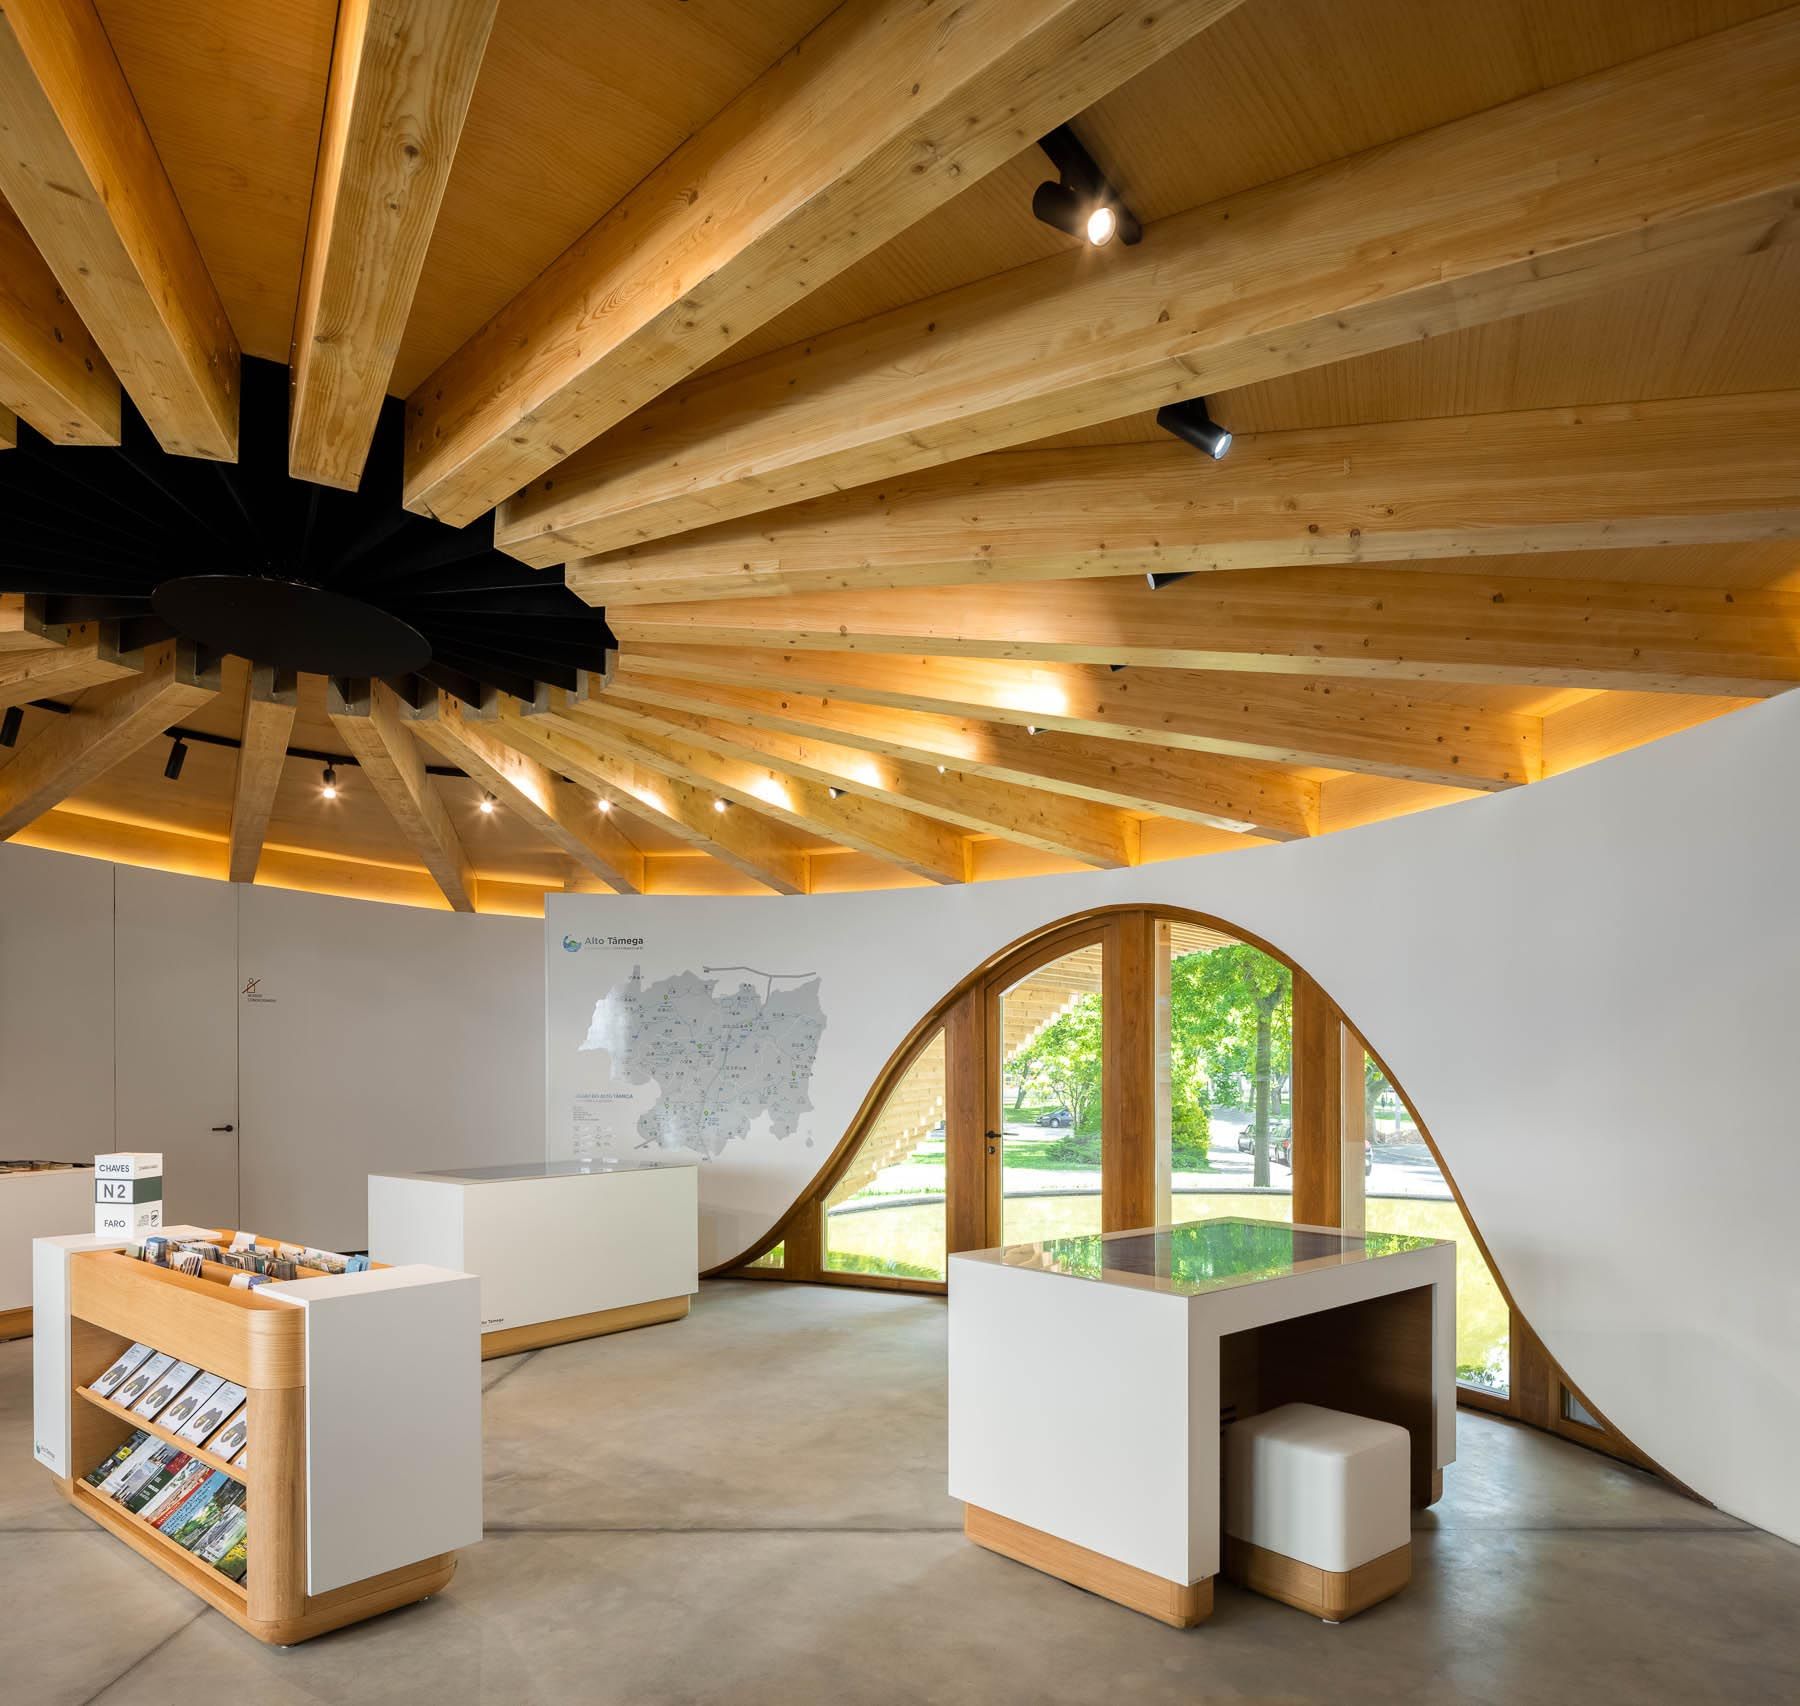 Inside this round building, there's a single open-space room with an exposed wood ceiling,